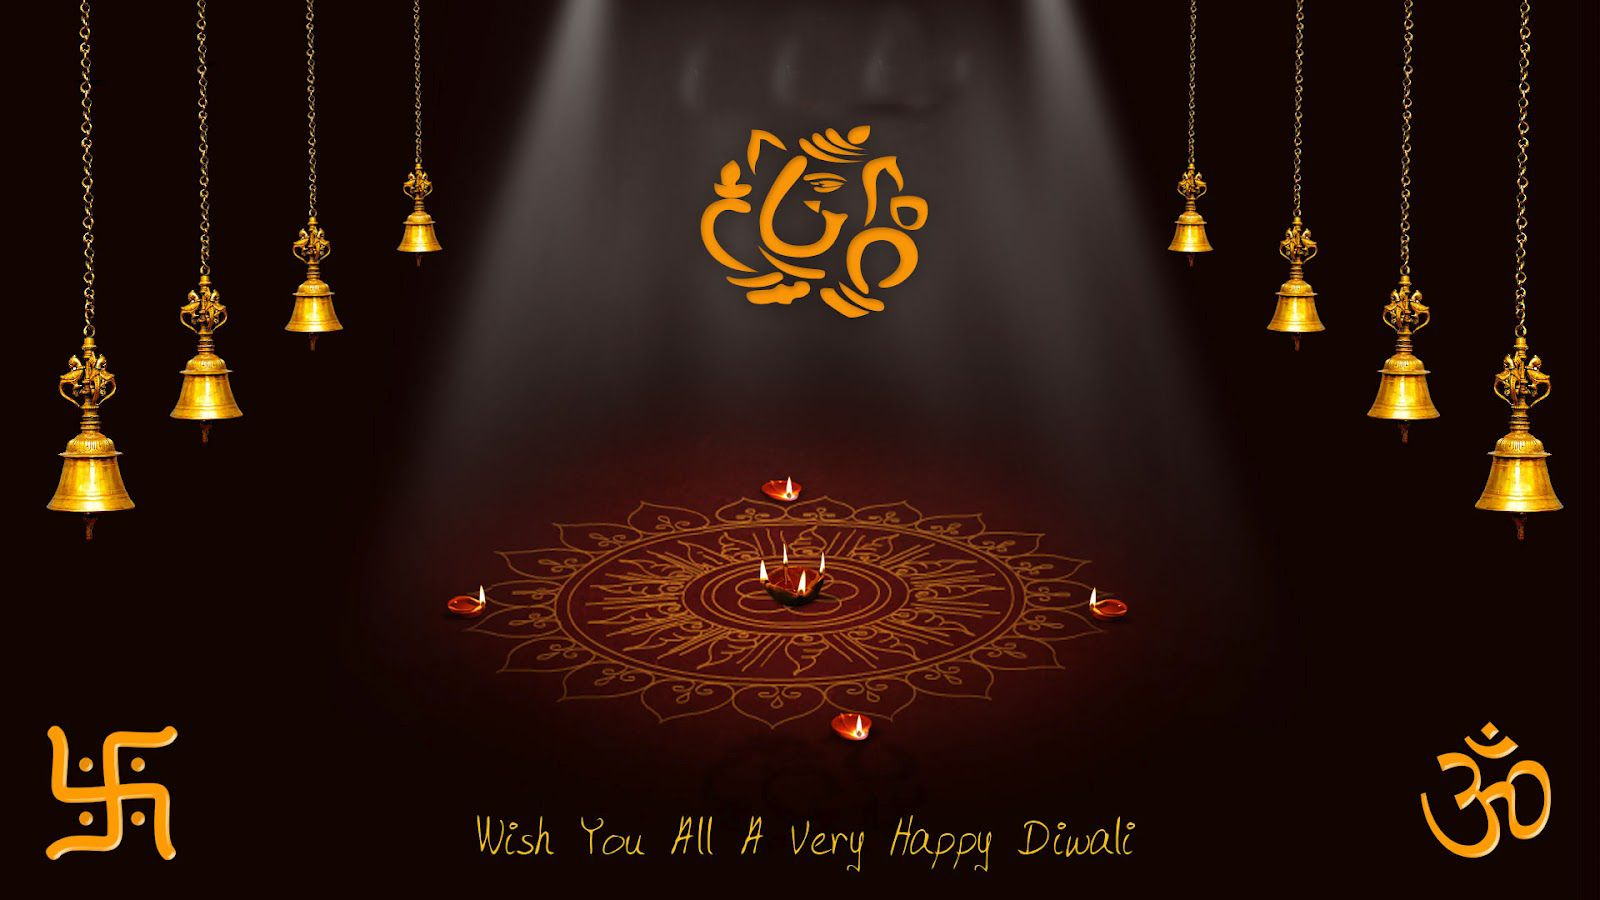 Happy diwali 2015 download free new sms images and greeting cards happy diwali 2015 download free new sms images and greeting cards http kristyandbryce Gallery